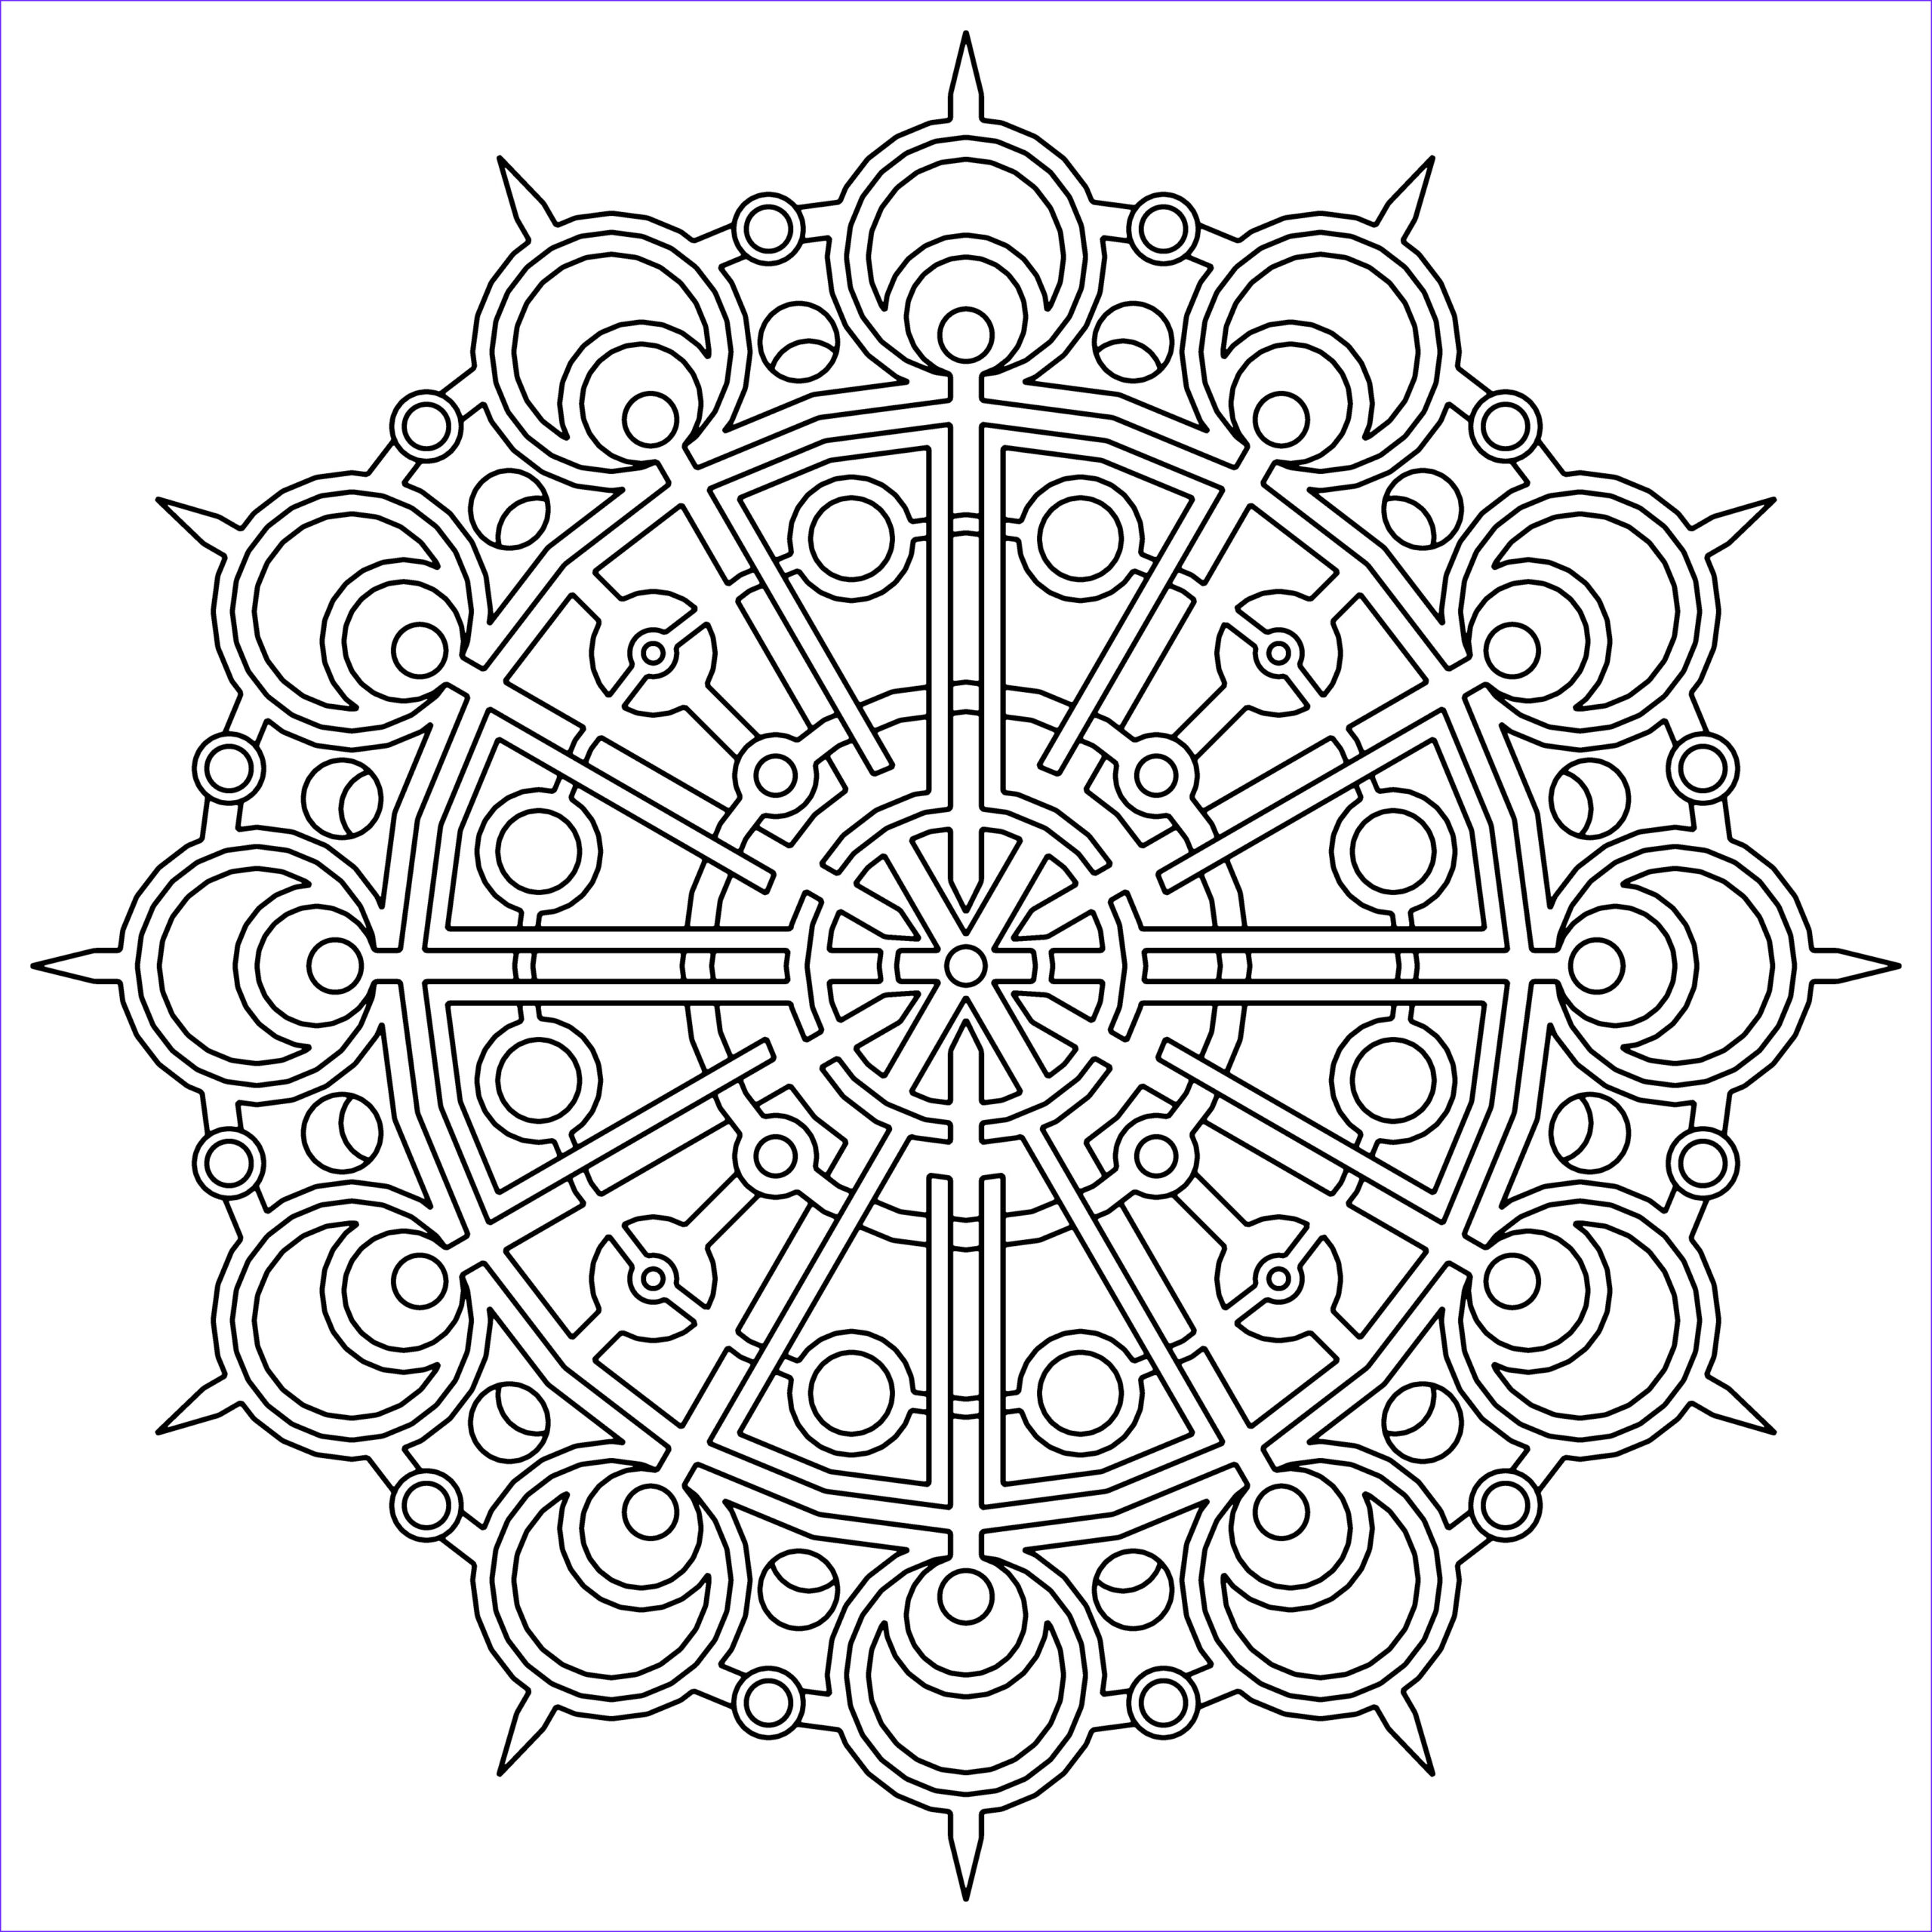 Printables Coloring Pages Awesome Photos Free Printable Geometric Coloring Pages for Kids